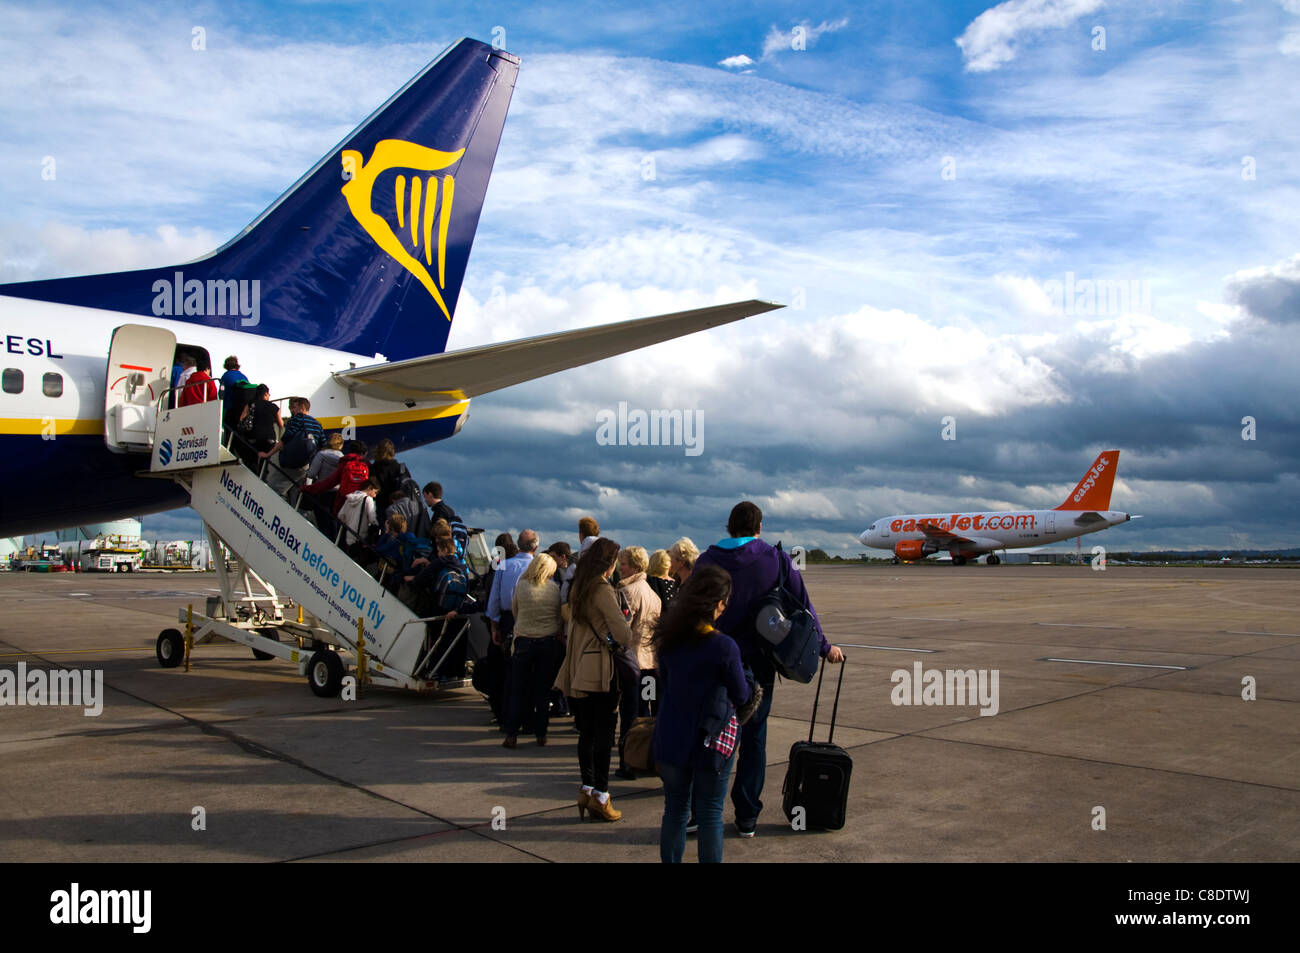 Passengers queue to board a Ryanair Boeing 737-800 plane as an Easyjet airplane lands - Stock Image